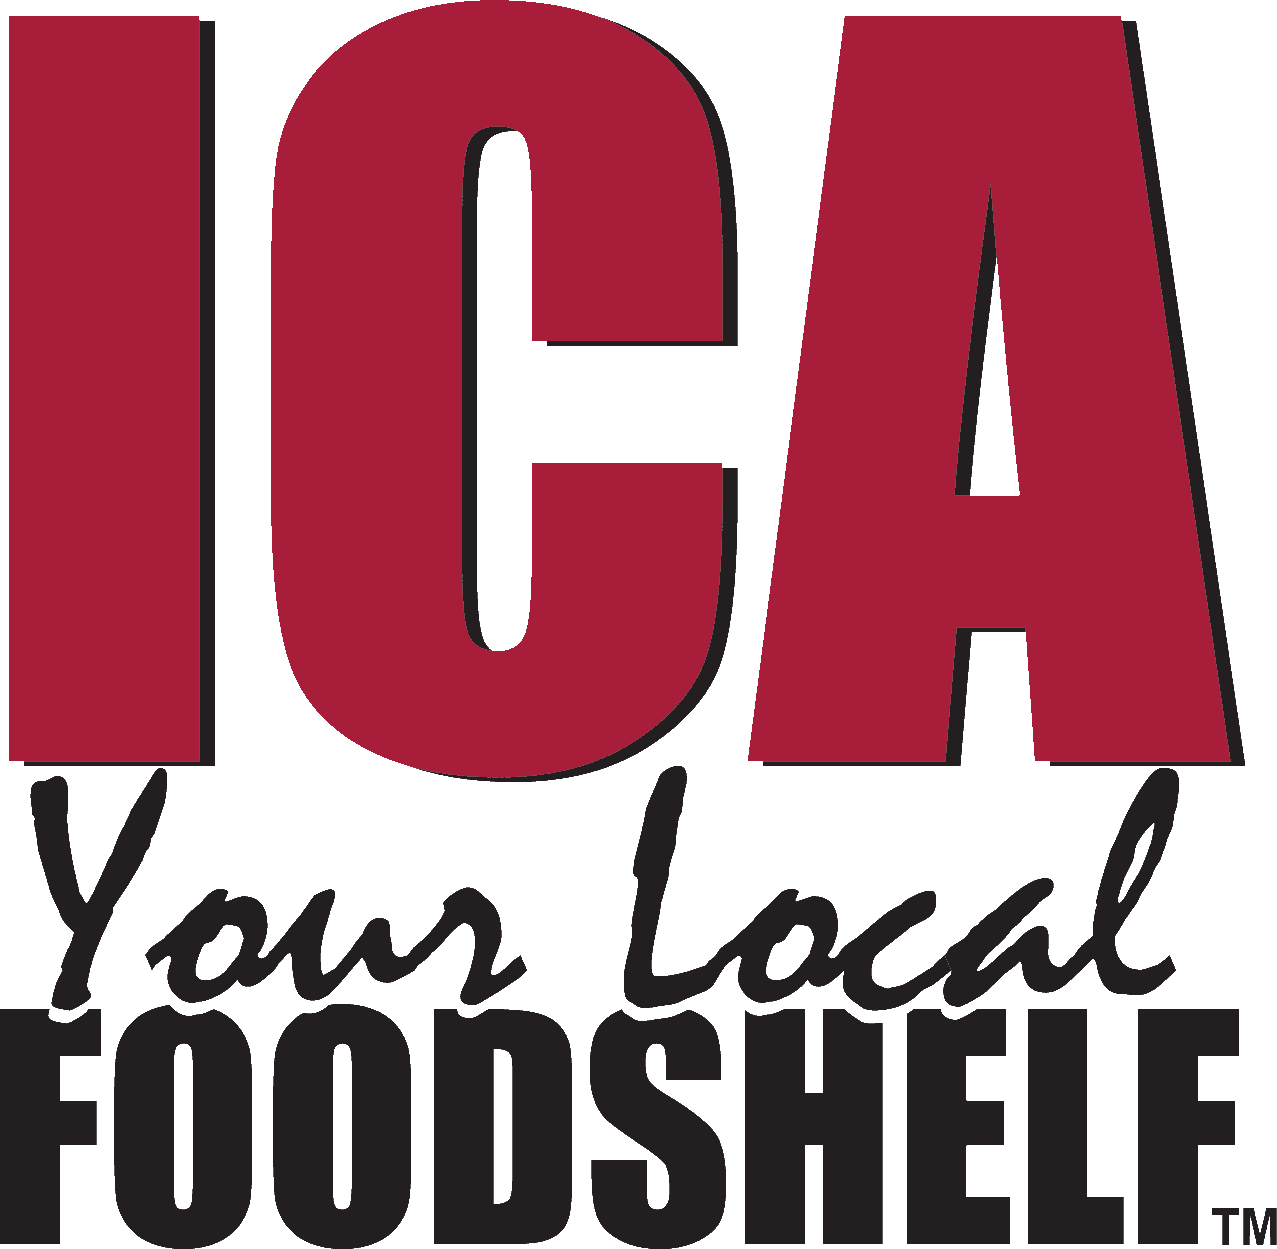 ICA Food Shelf